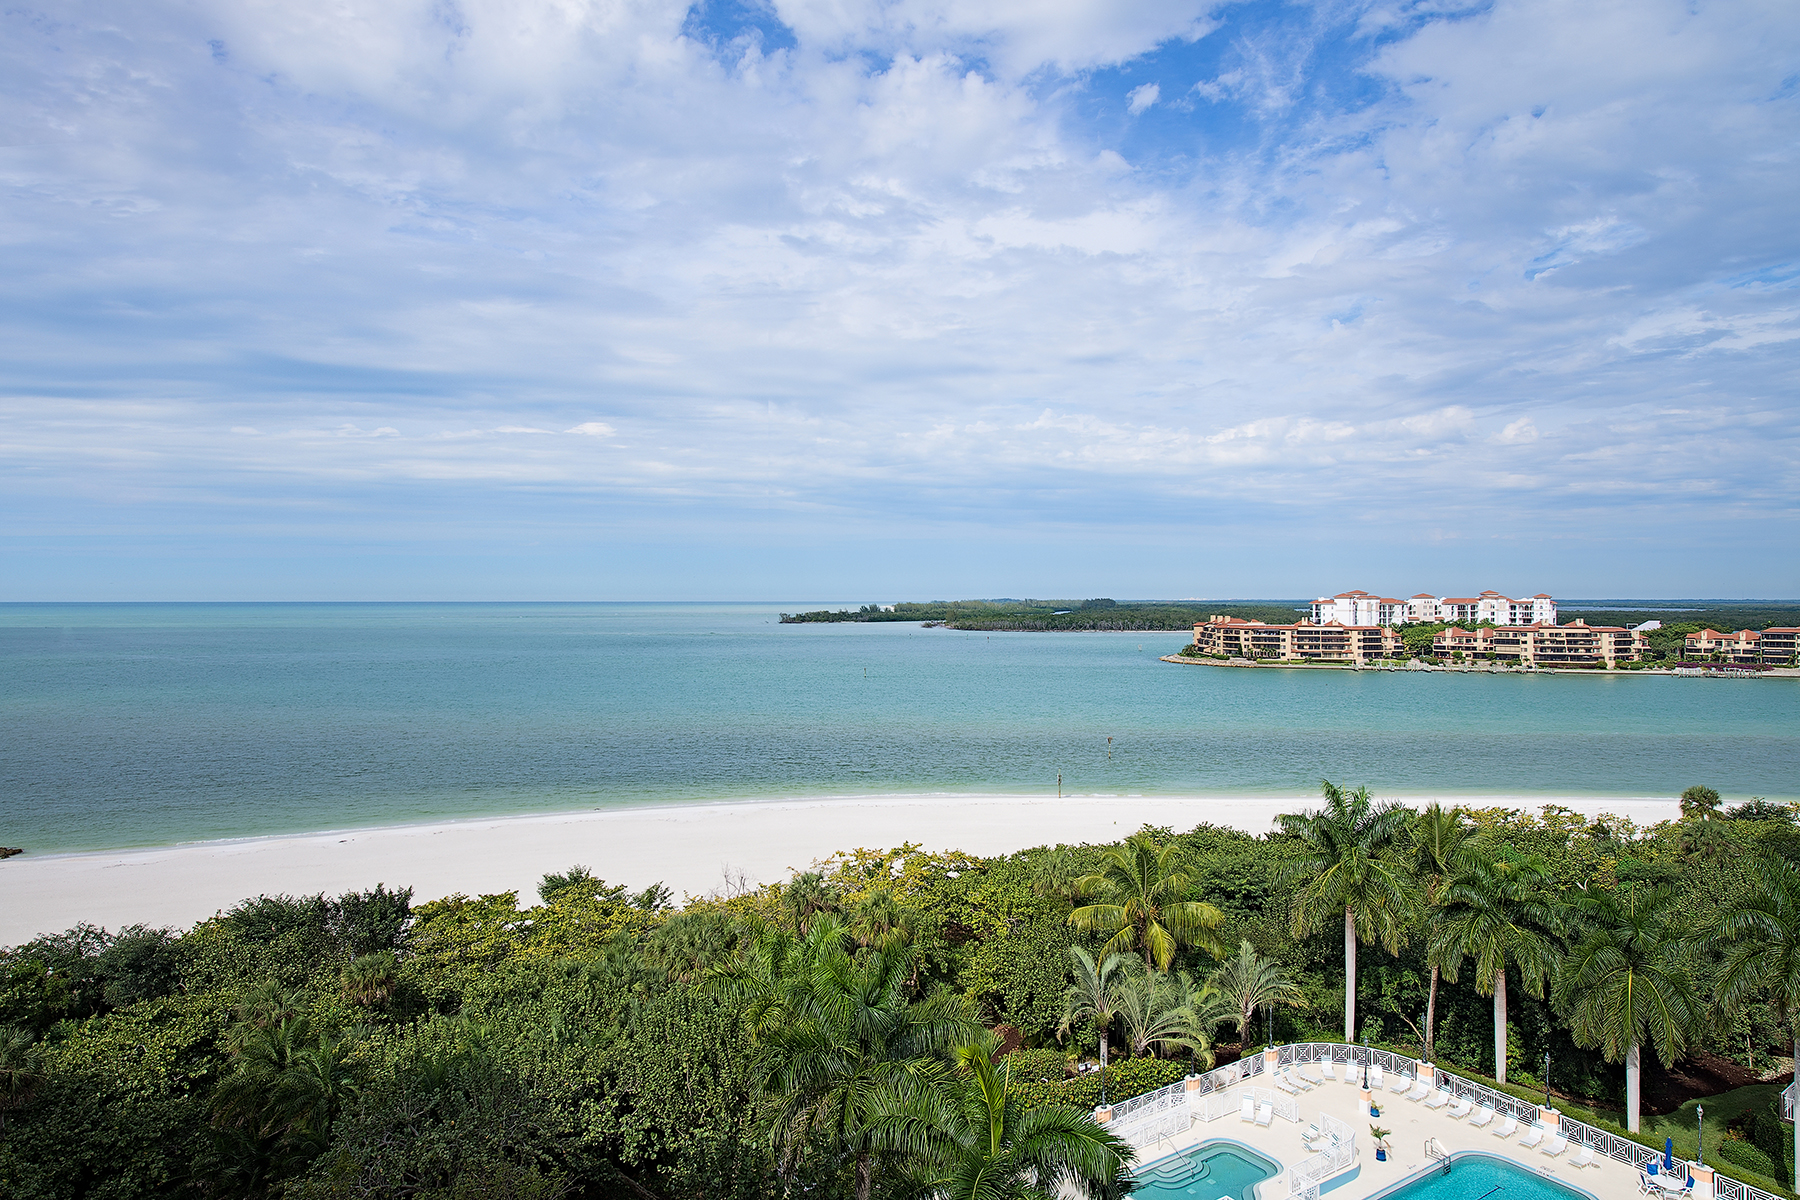 Property For Sale at HIDEAWAY BEACH - HIDEAWAY BEACH